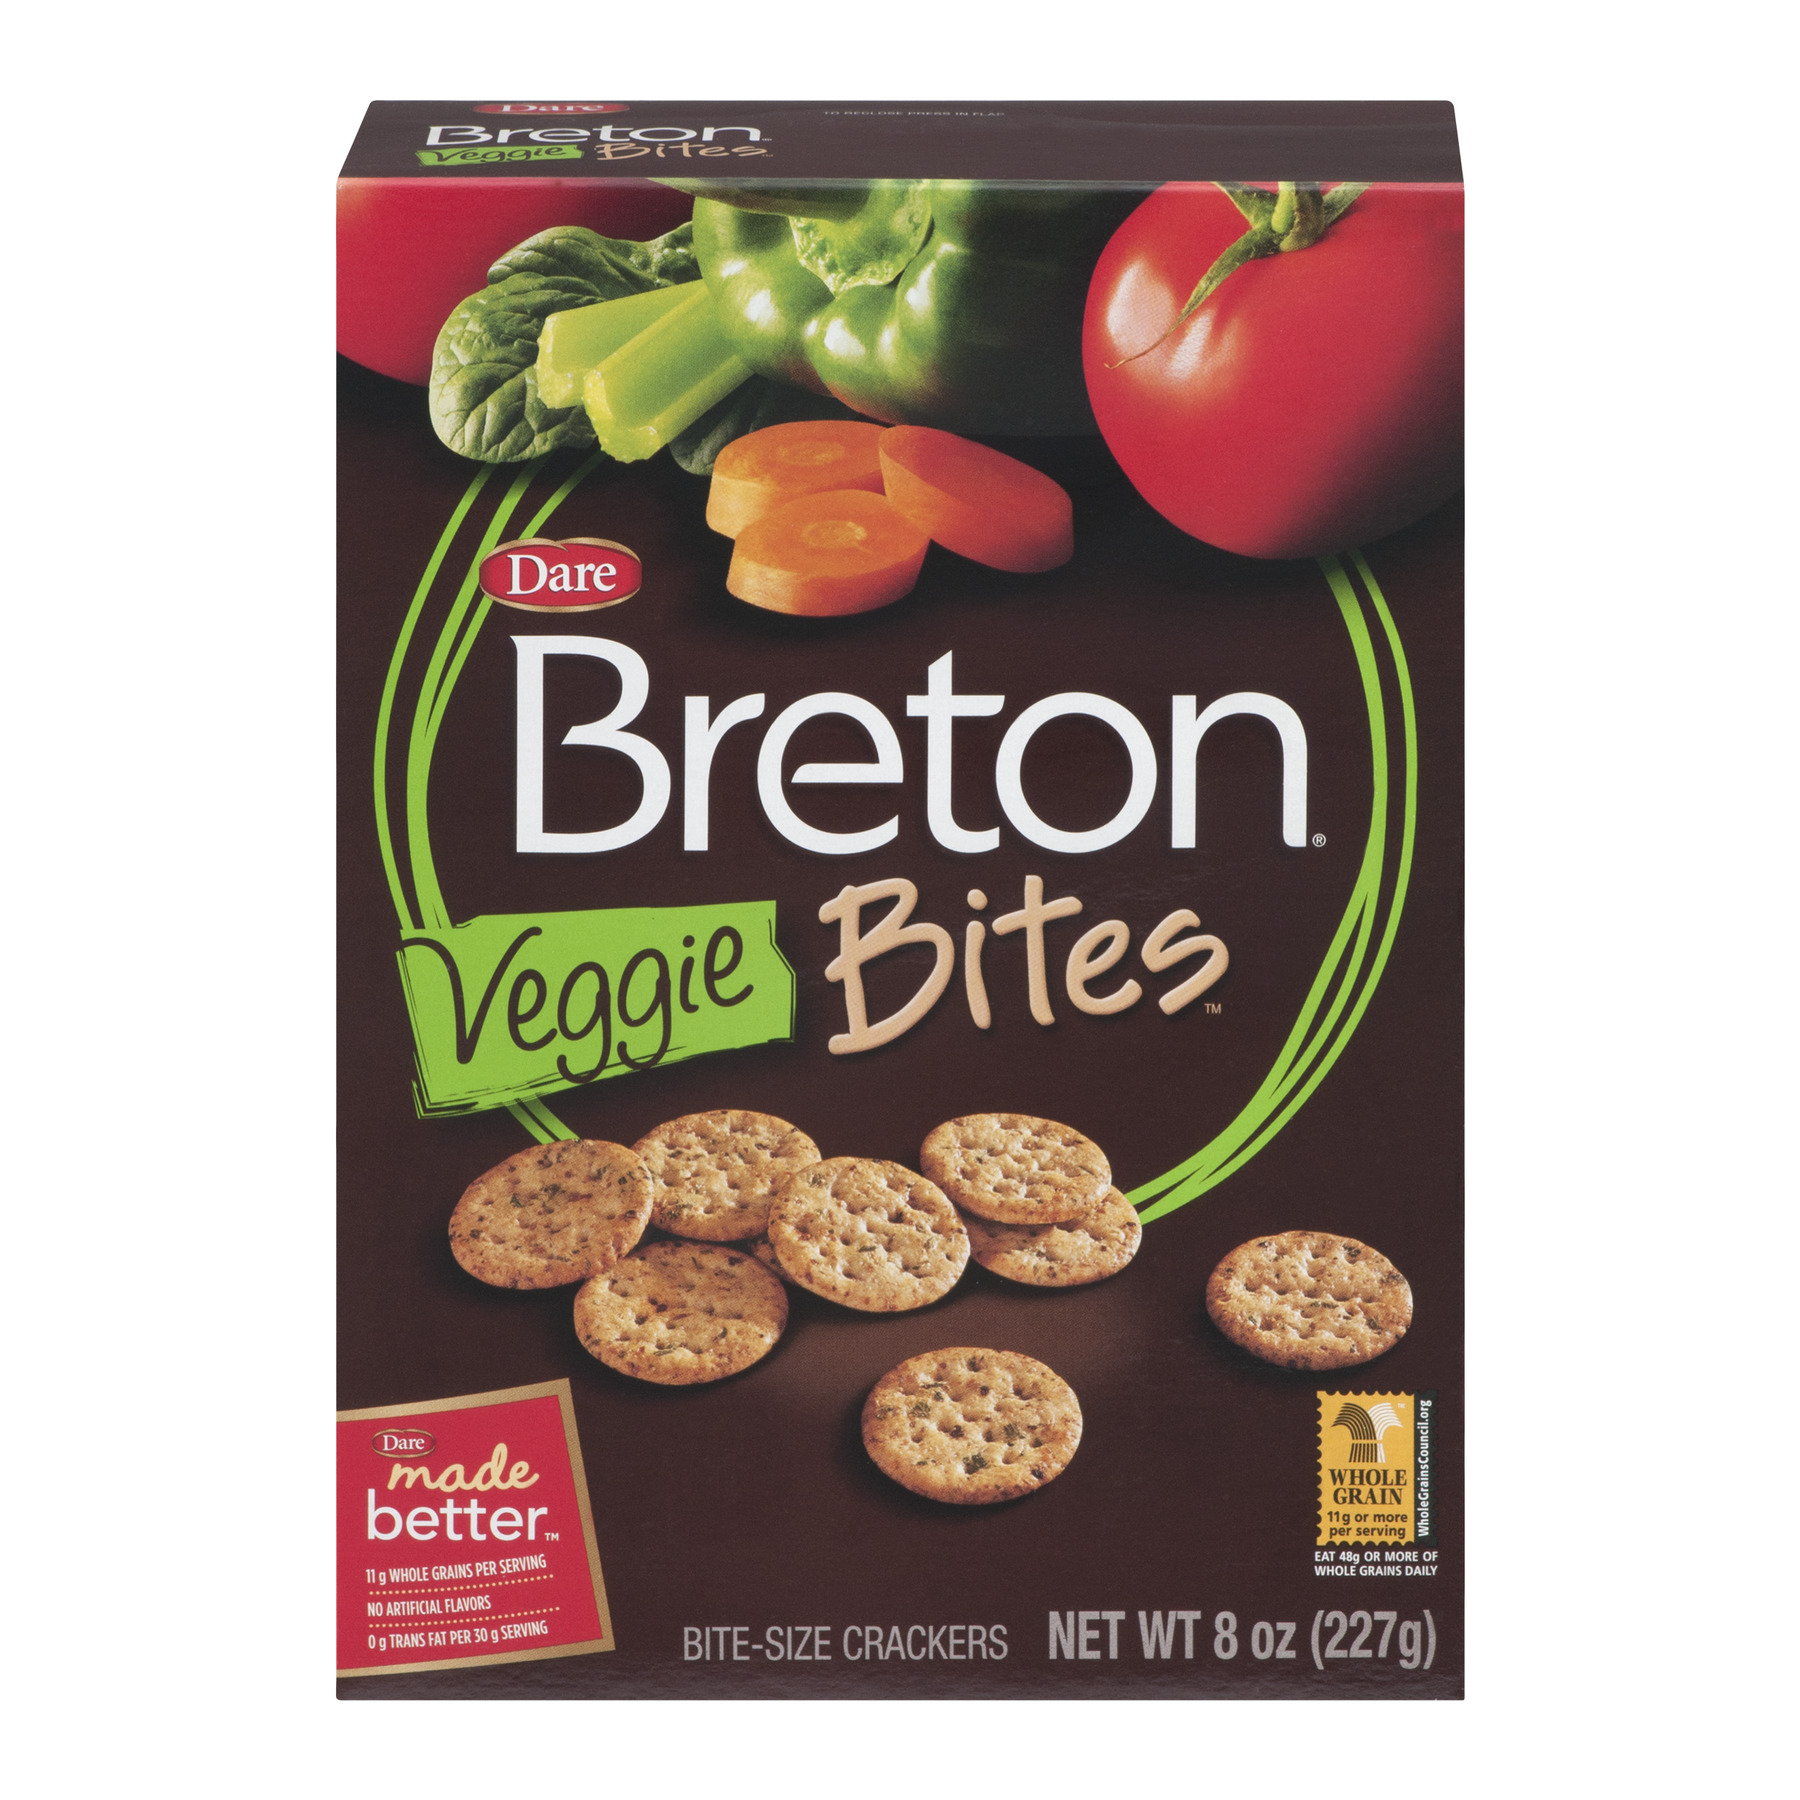 Dare Breton Veggie Bites Bite-Sized Crackers, 8.0 OZ